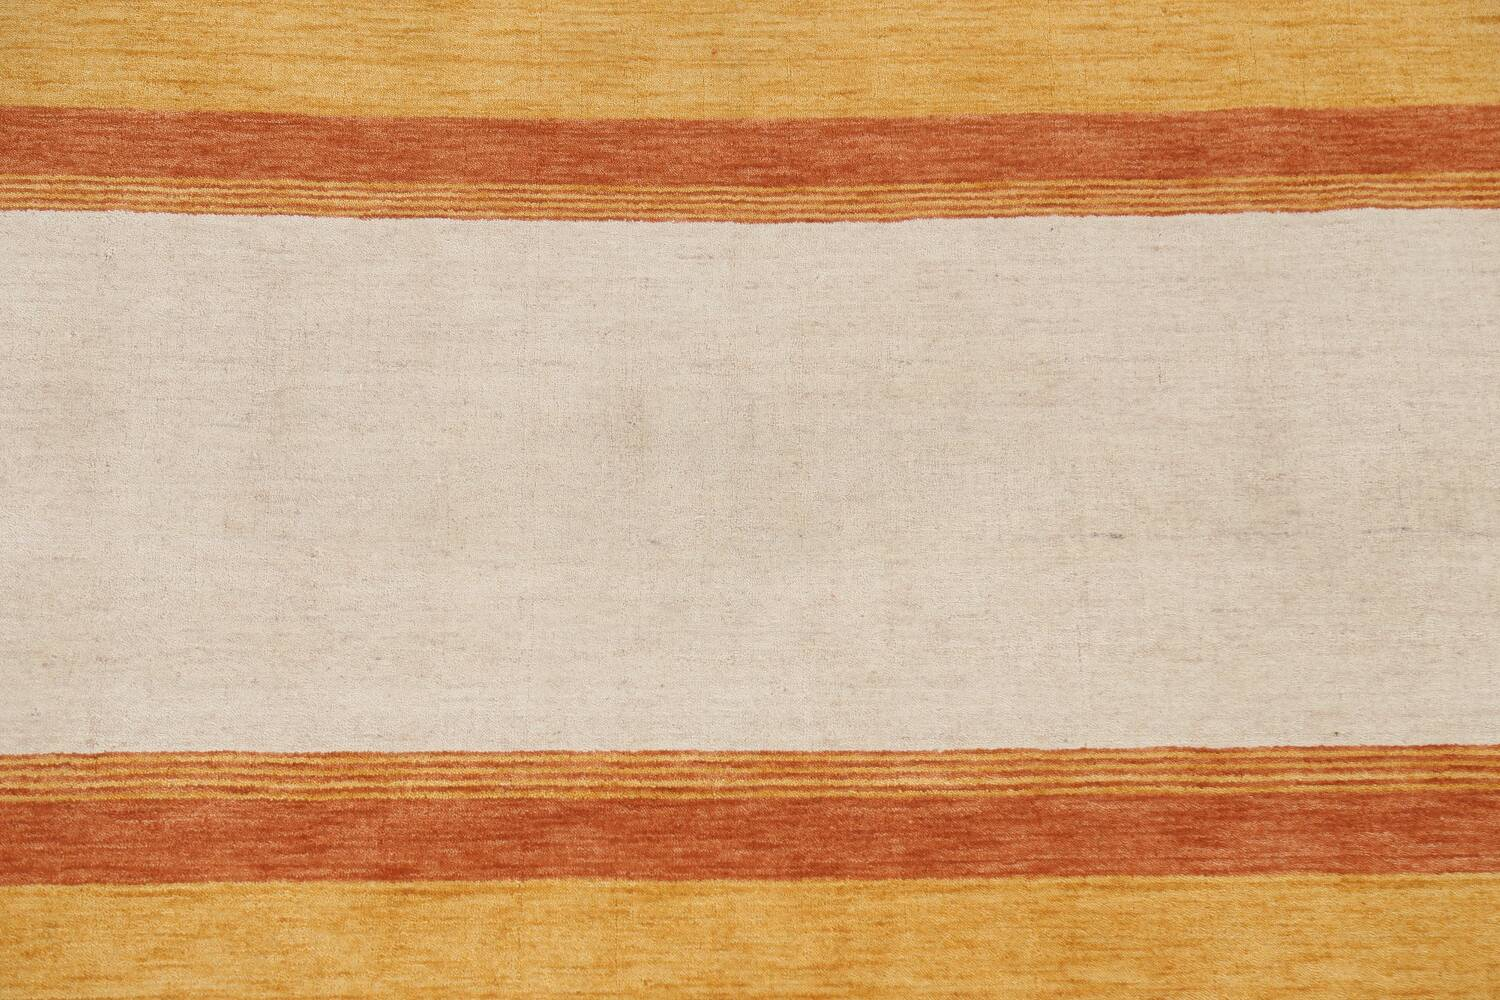 Contemporary Gabbeh Wool Area Rug 7x10 image 5